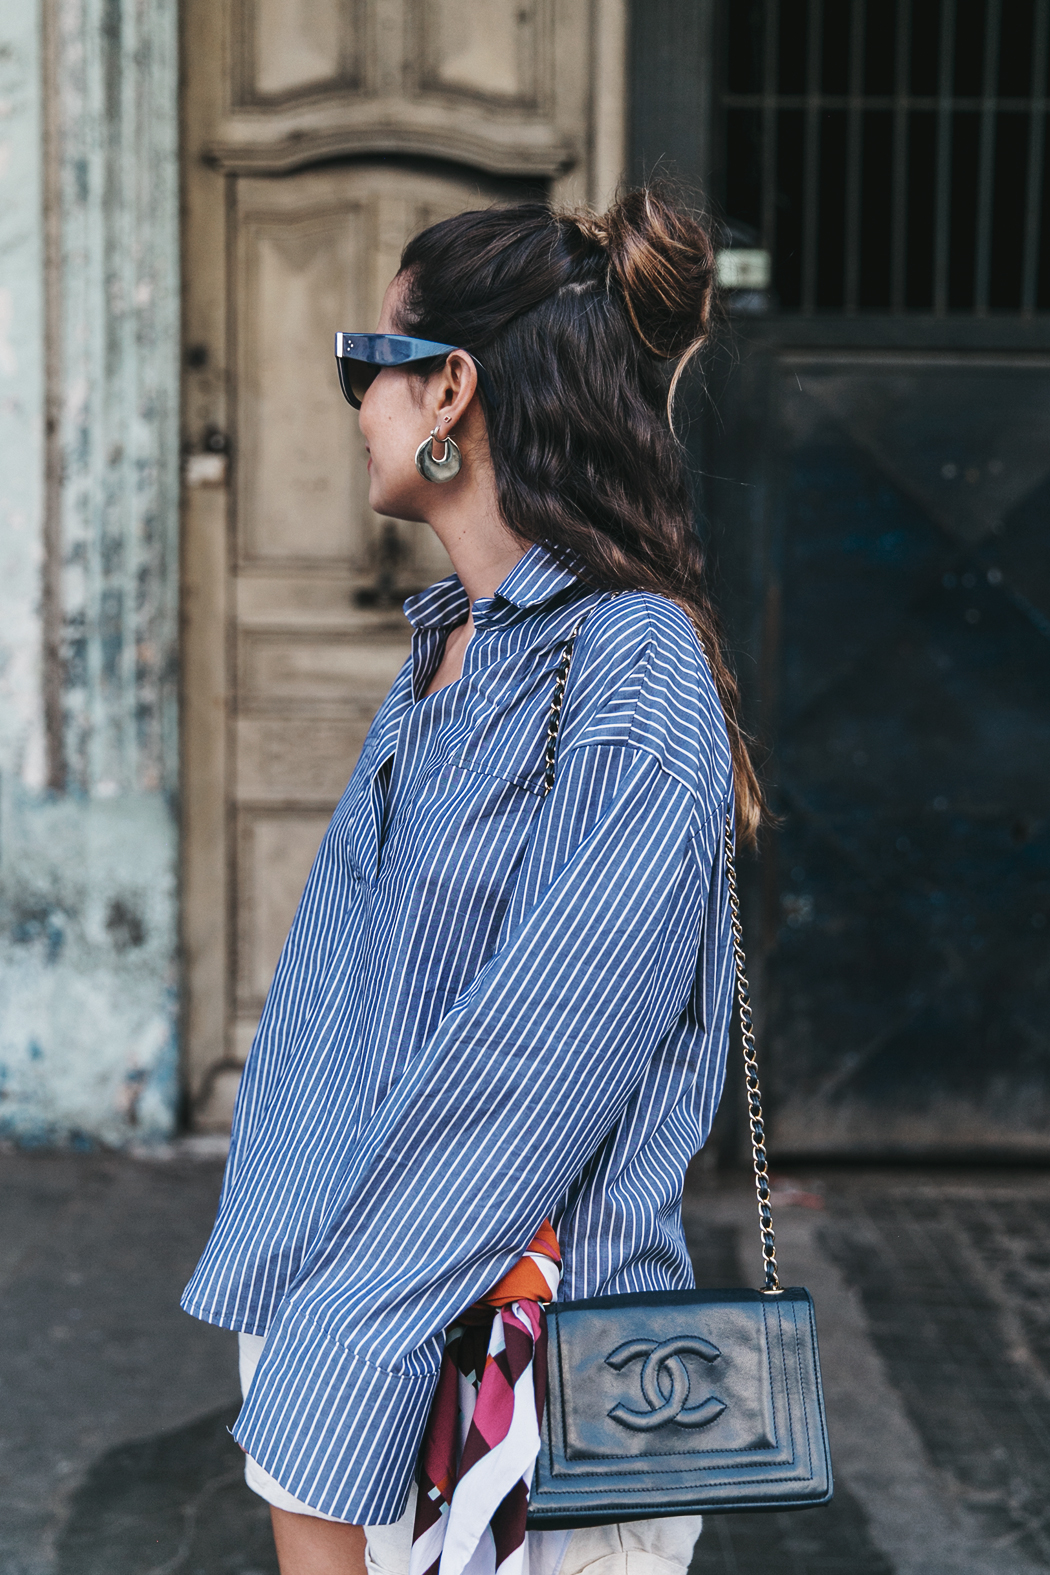 Cuba_La_habana-Striped_Blouse-Isabel_Marant_Shoes-Vintage_Chanel-Outfit-StreetStyle-